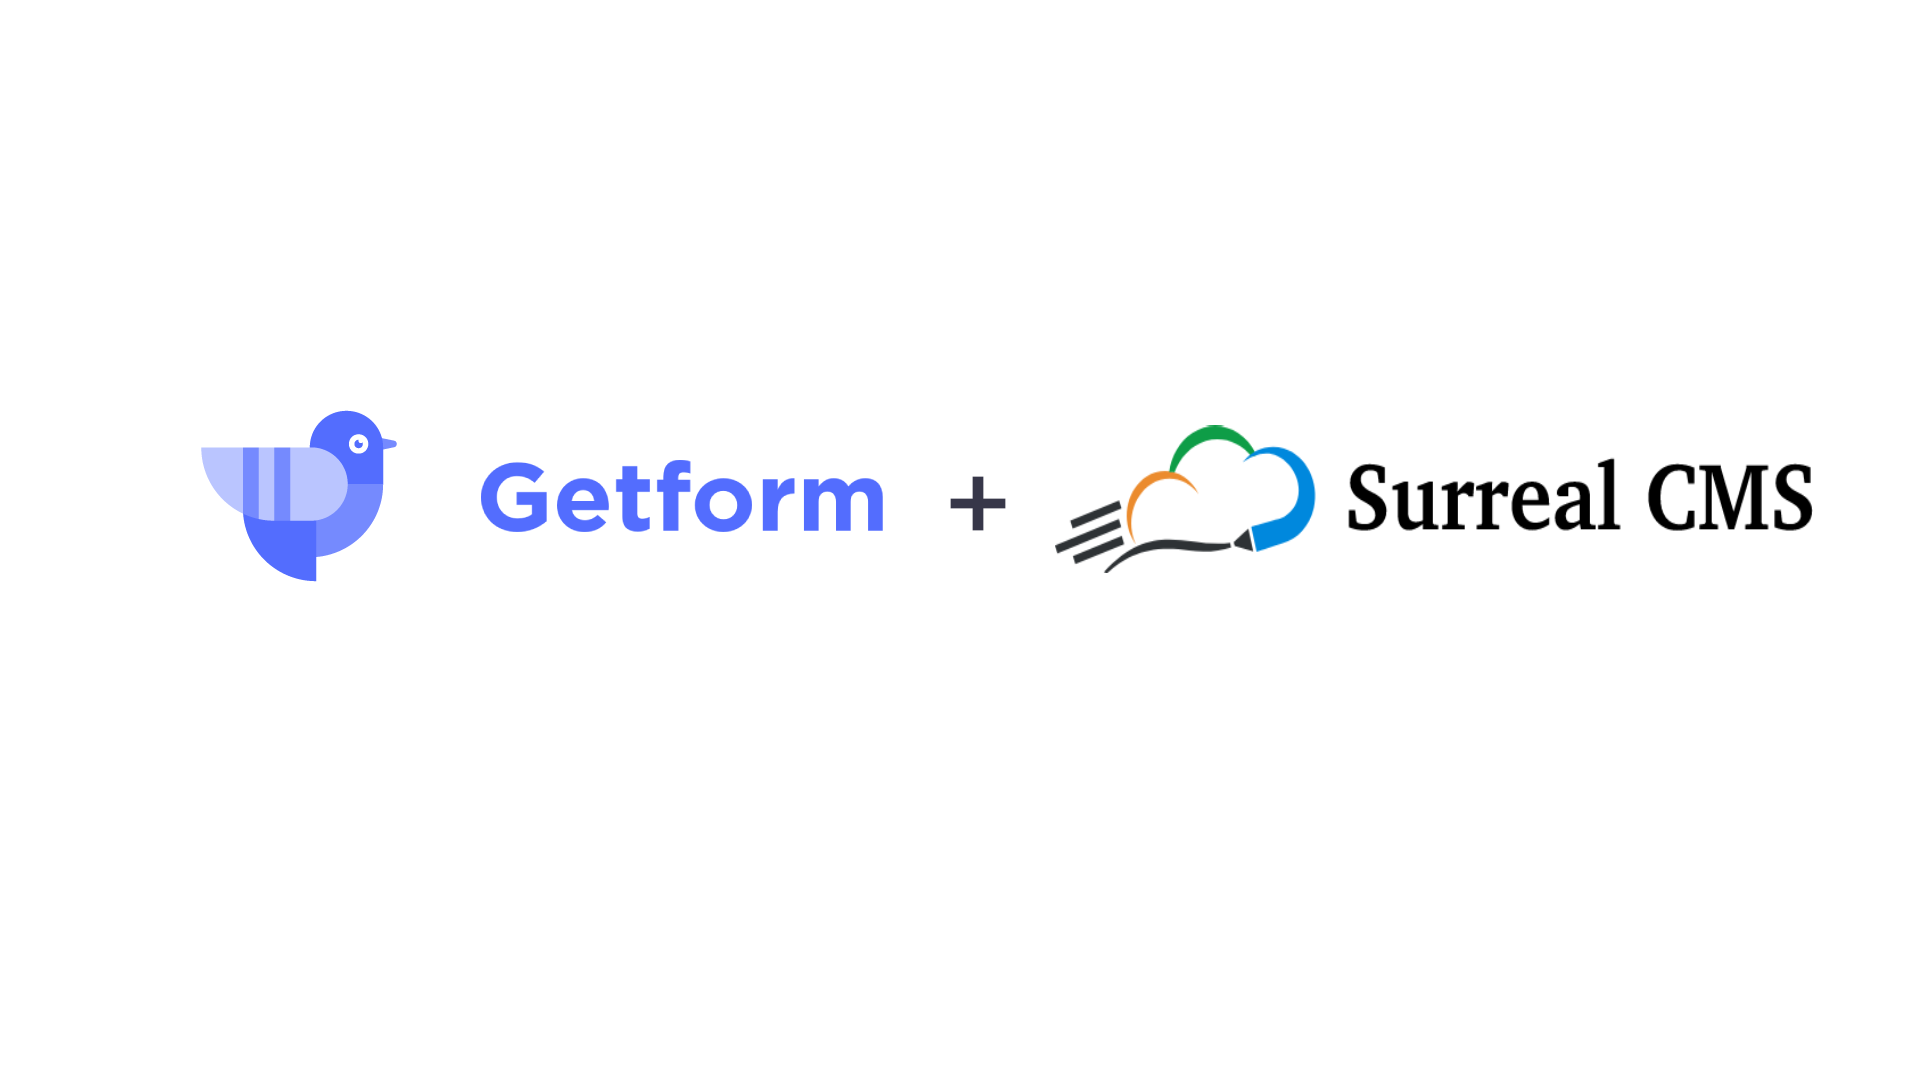 How to add a contact form to Surreal CMS using Getform